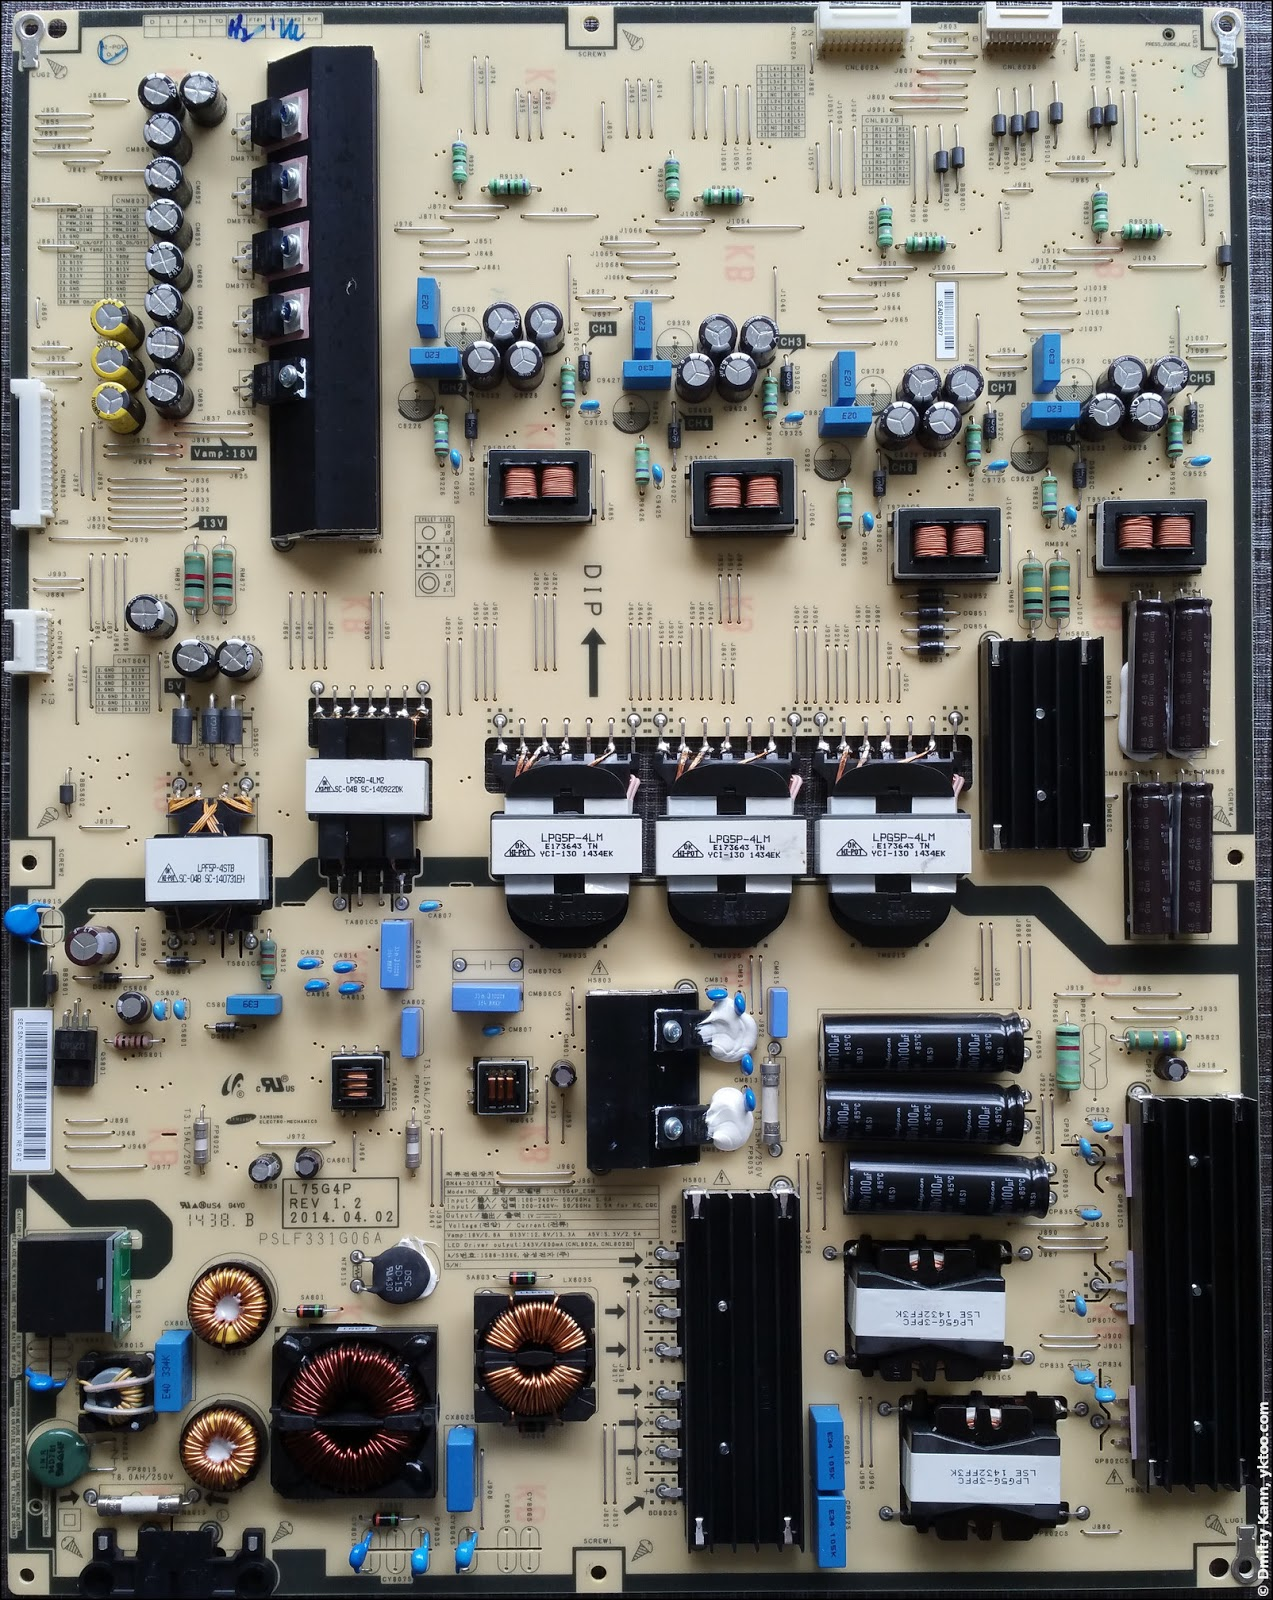 Power supply board.